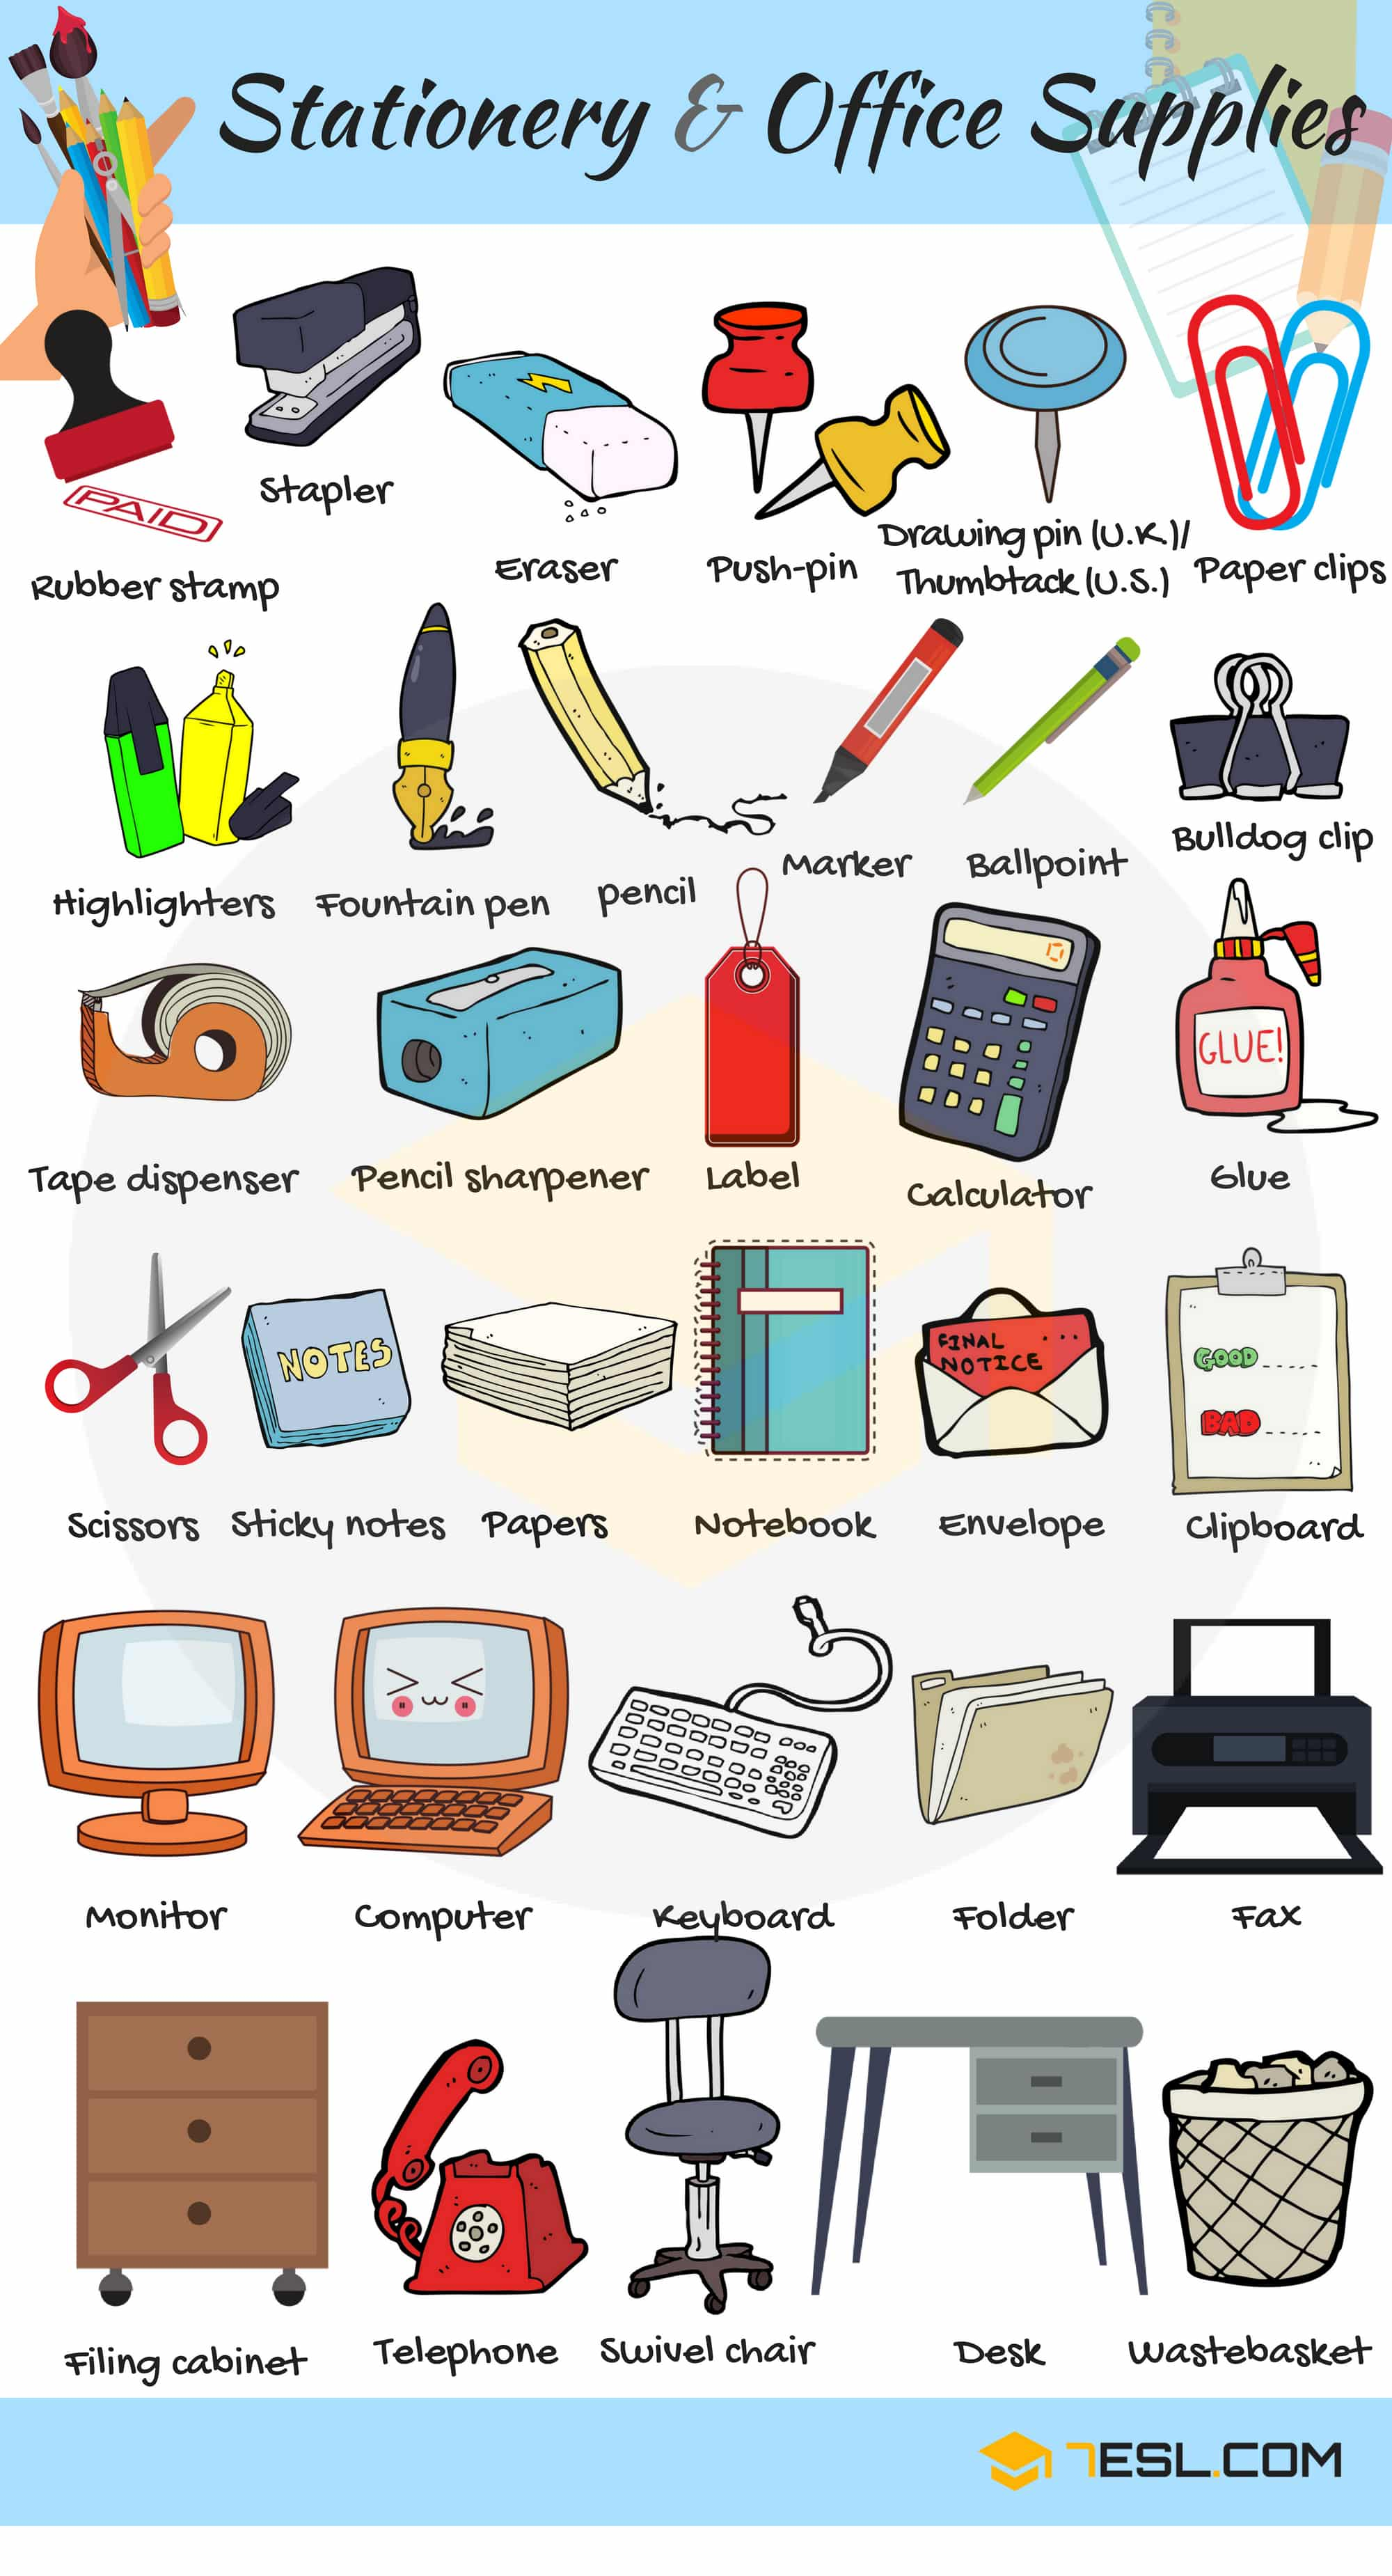 Tools And Equipment 300 Household Items Devices